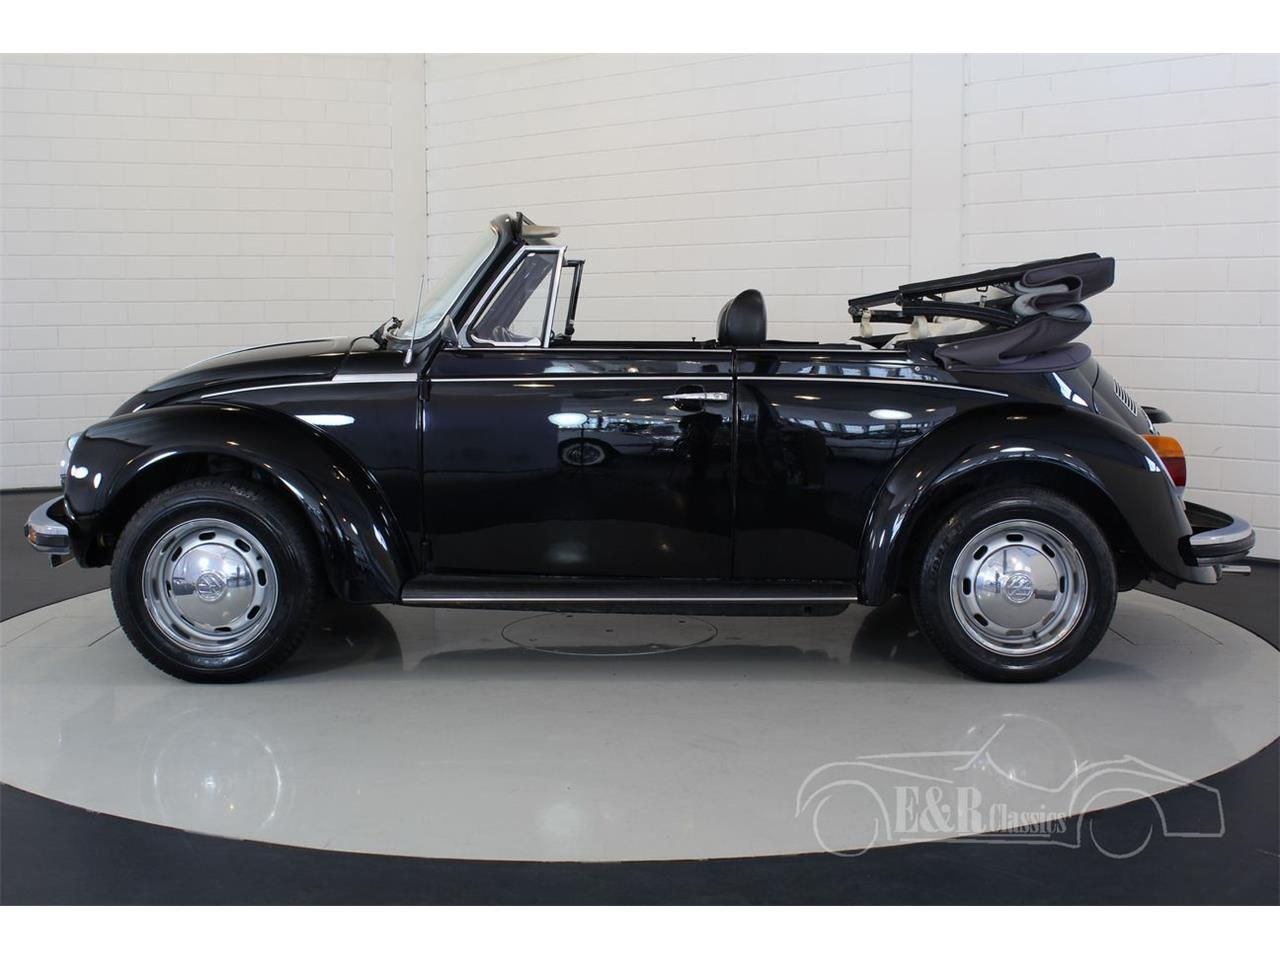 Large Picture of 1977 Volkswagen Beetle located in Waalwijk Noord Brabant - $28,450.00 - N8E6